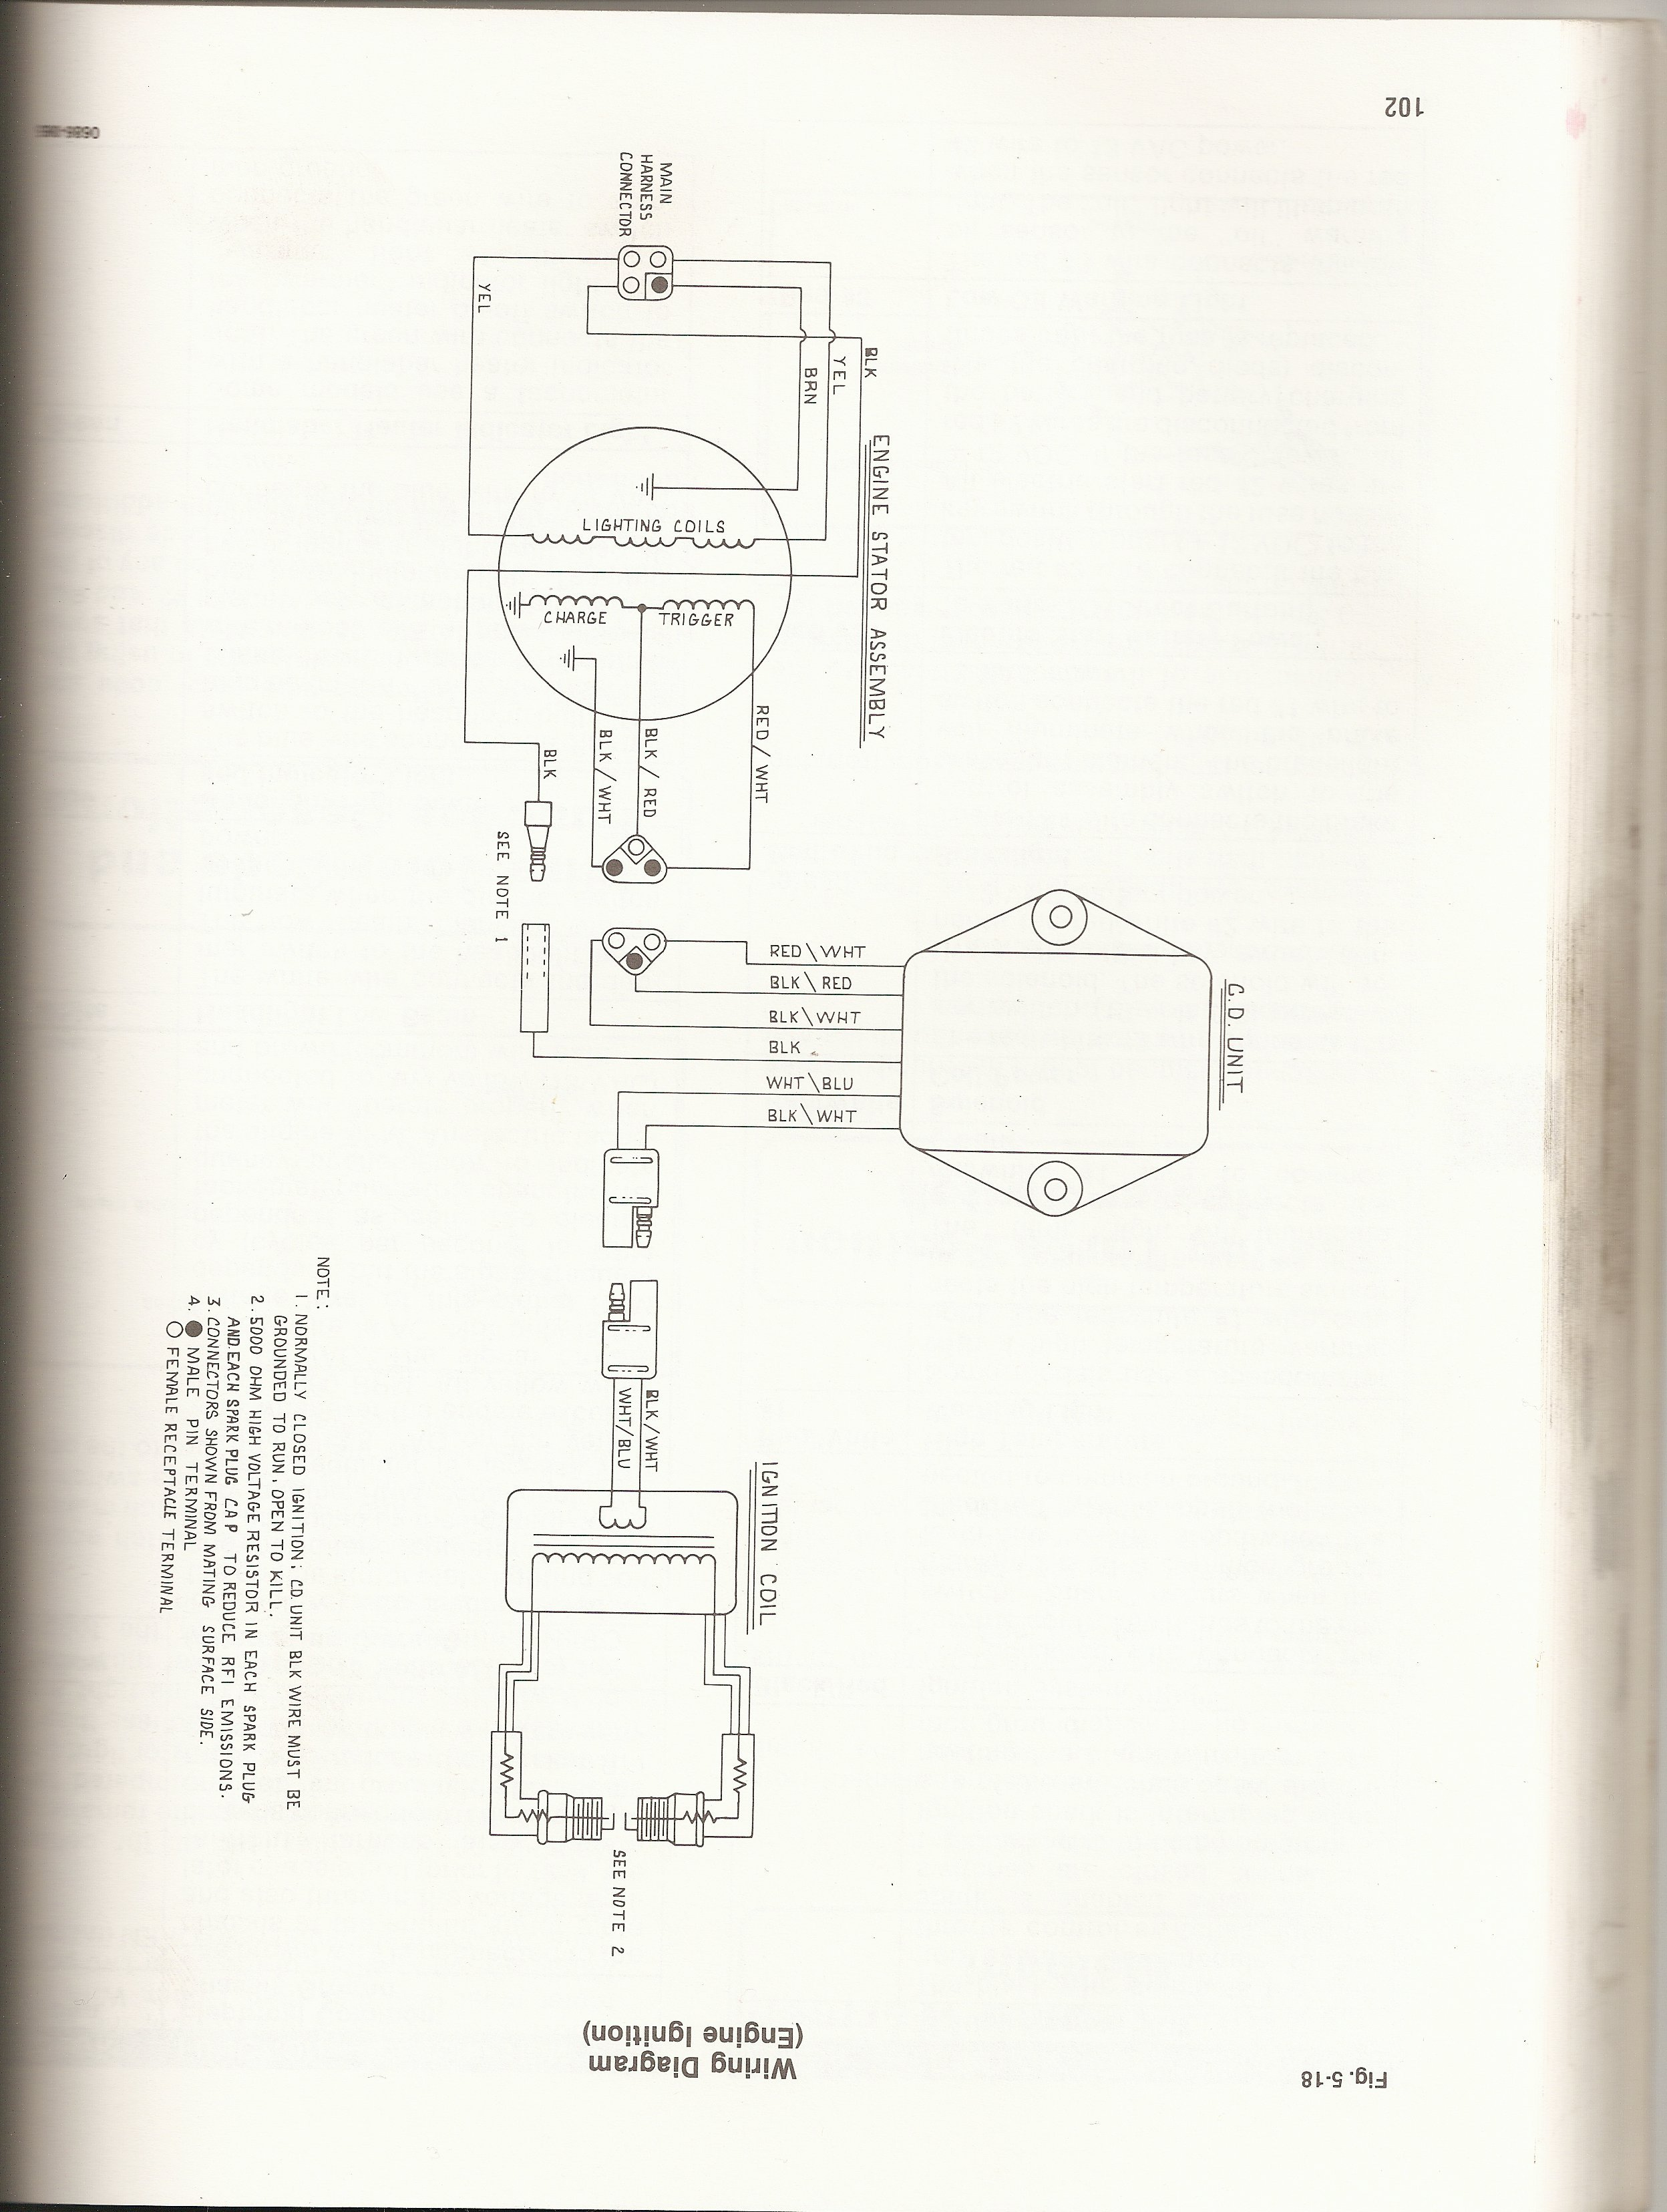 1992 Wildcat Wiring Diagram | Arctic Chat : Arctic Cat Forum | Wildcat Wiring Diagram 92 |  | Arctic Chat